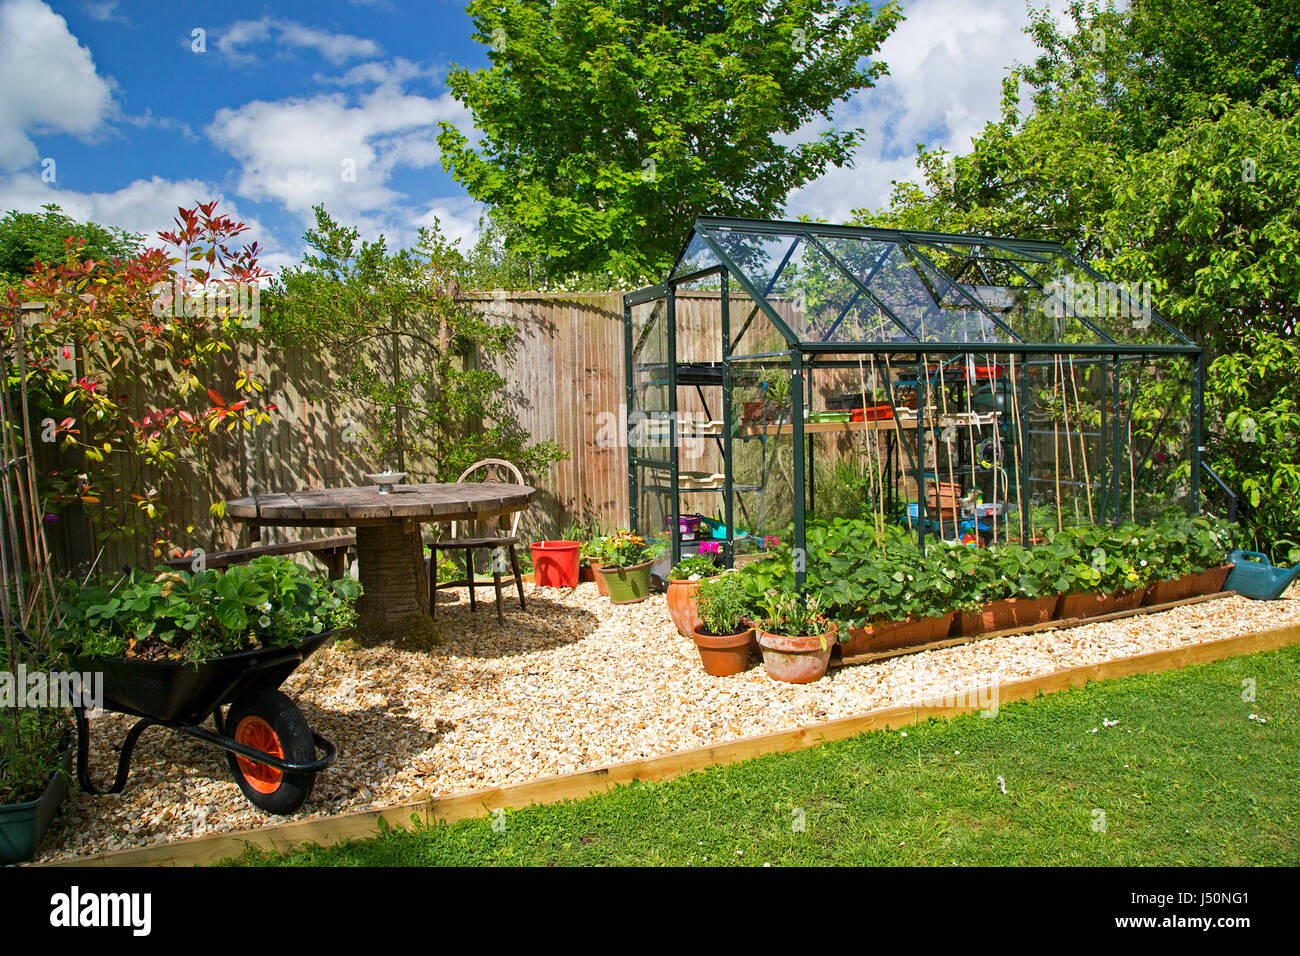 A plant-filled greenhouse in a domestic garden pictured on a sunny spring day in Oxfordshire, UK. Stock Photo